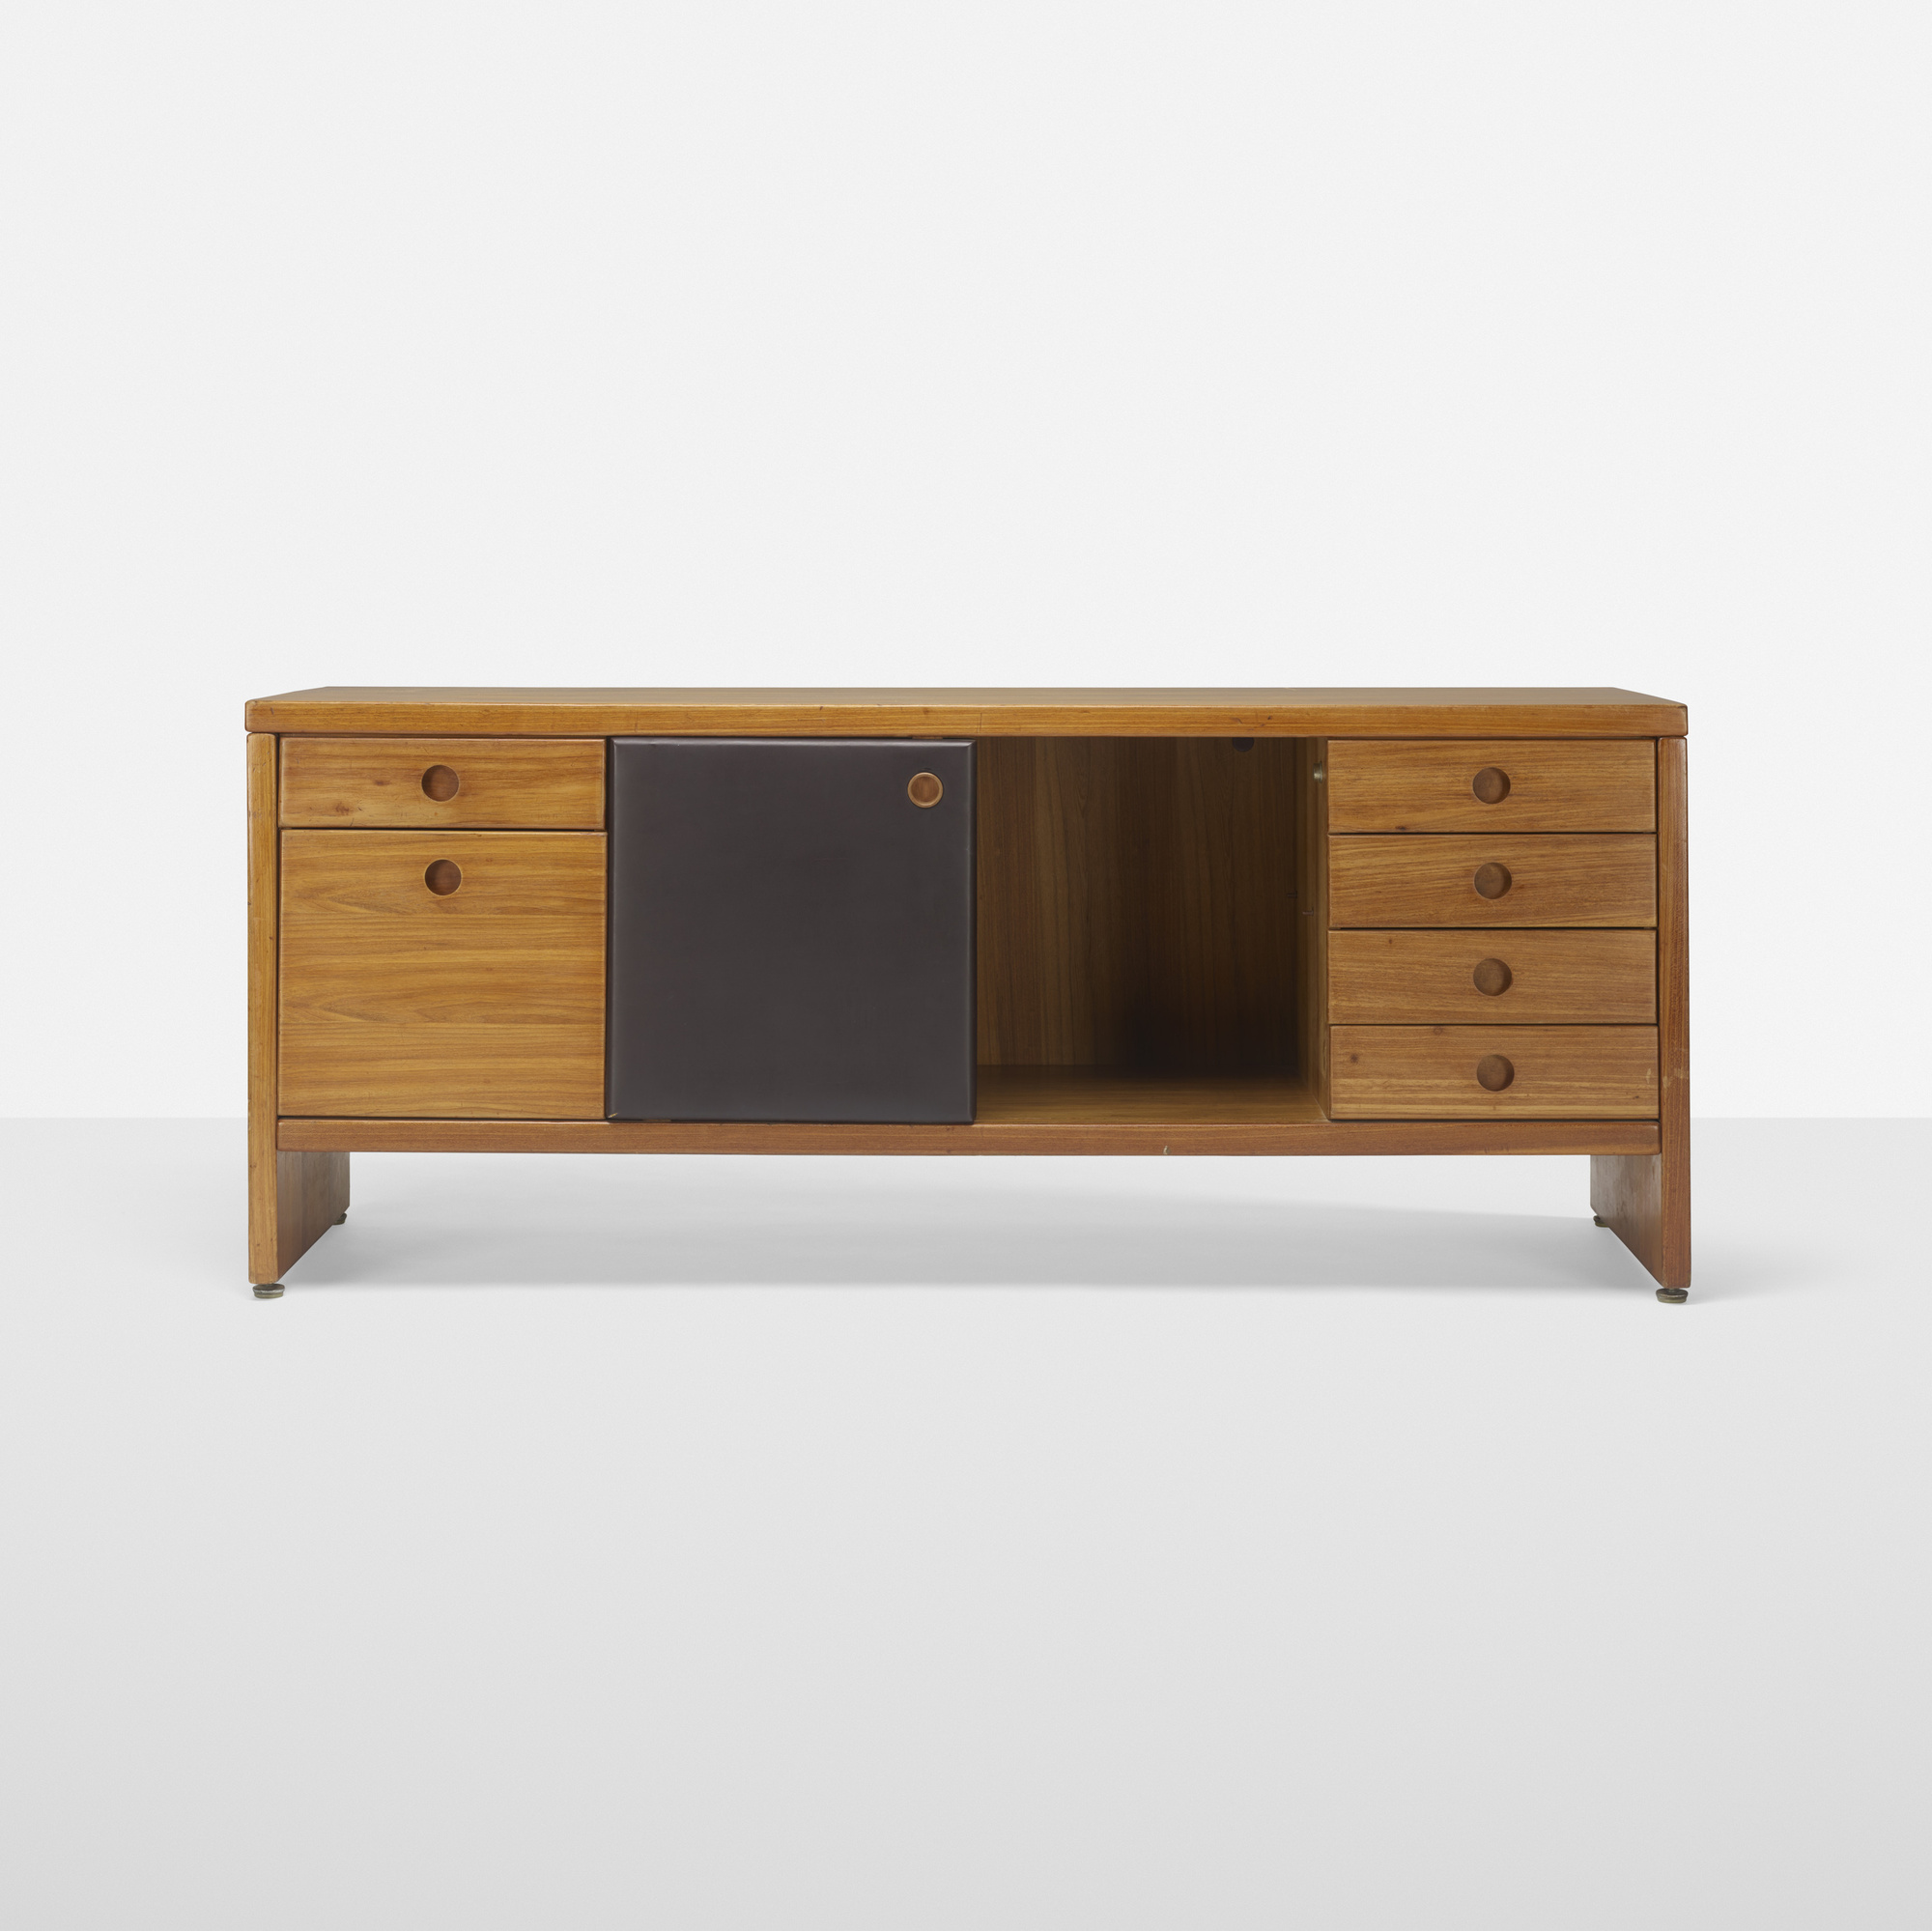 213: Sergio Rodrigues / Tupã cabinet (1 of 3)